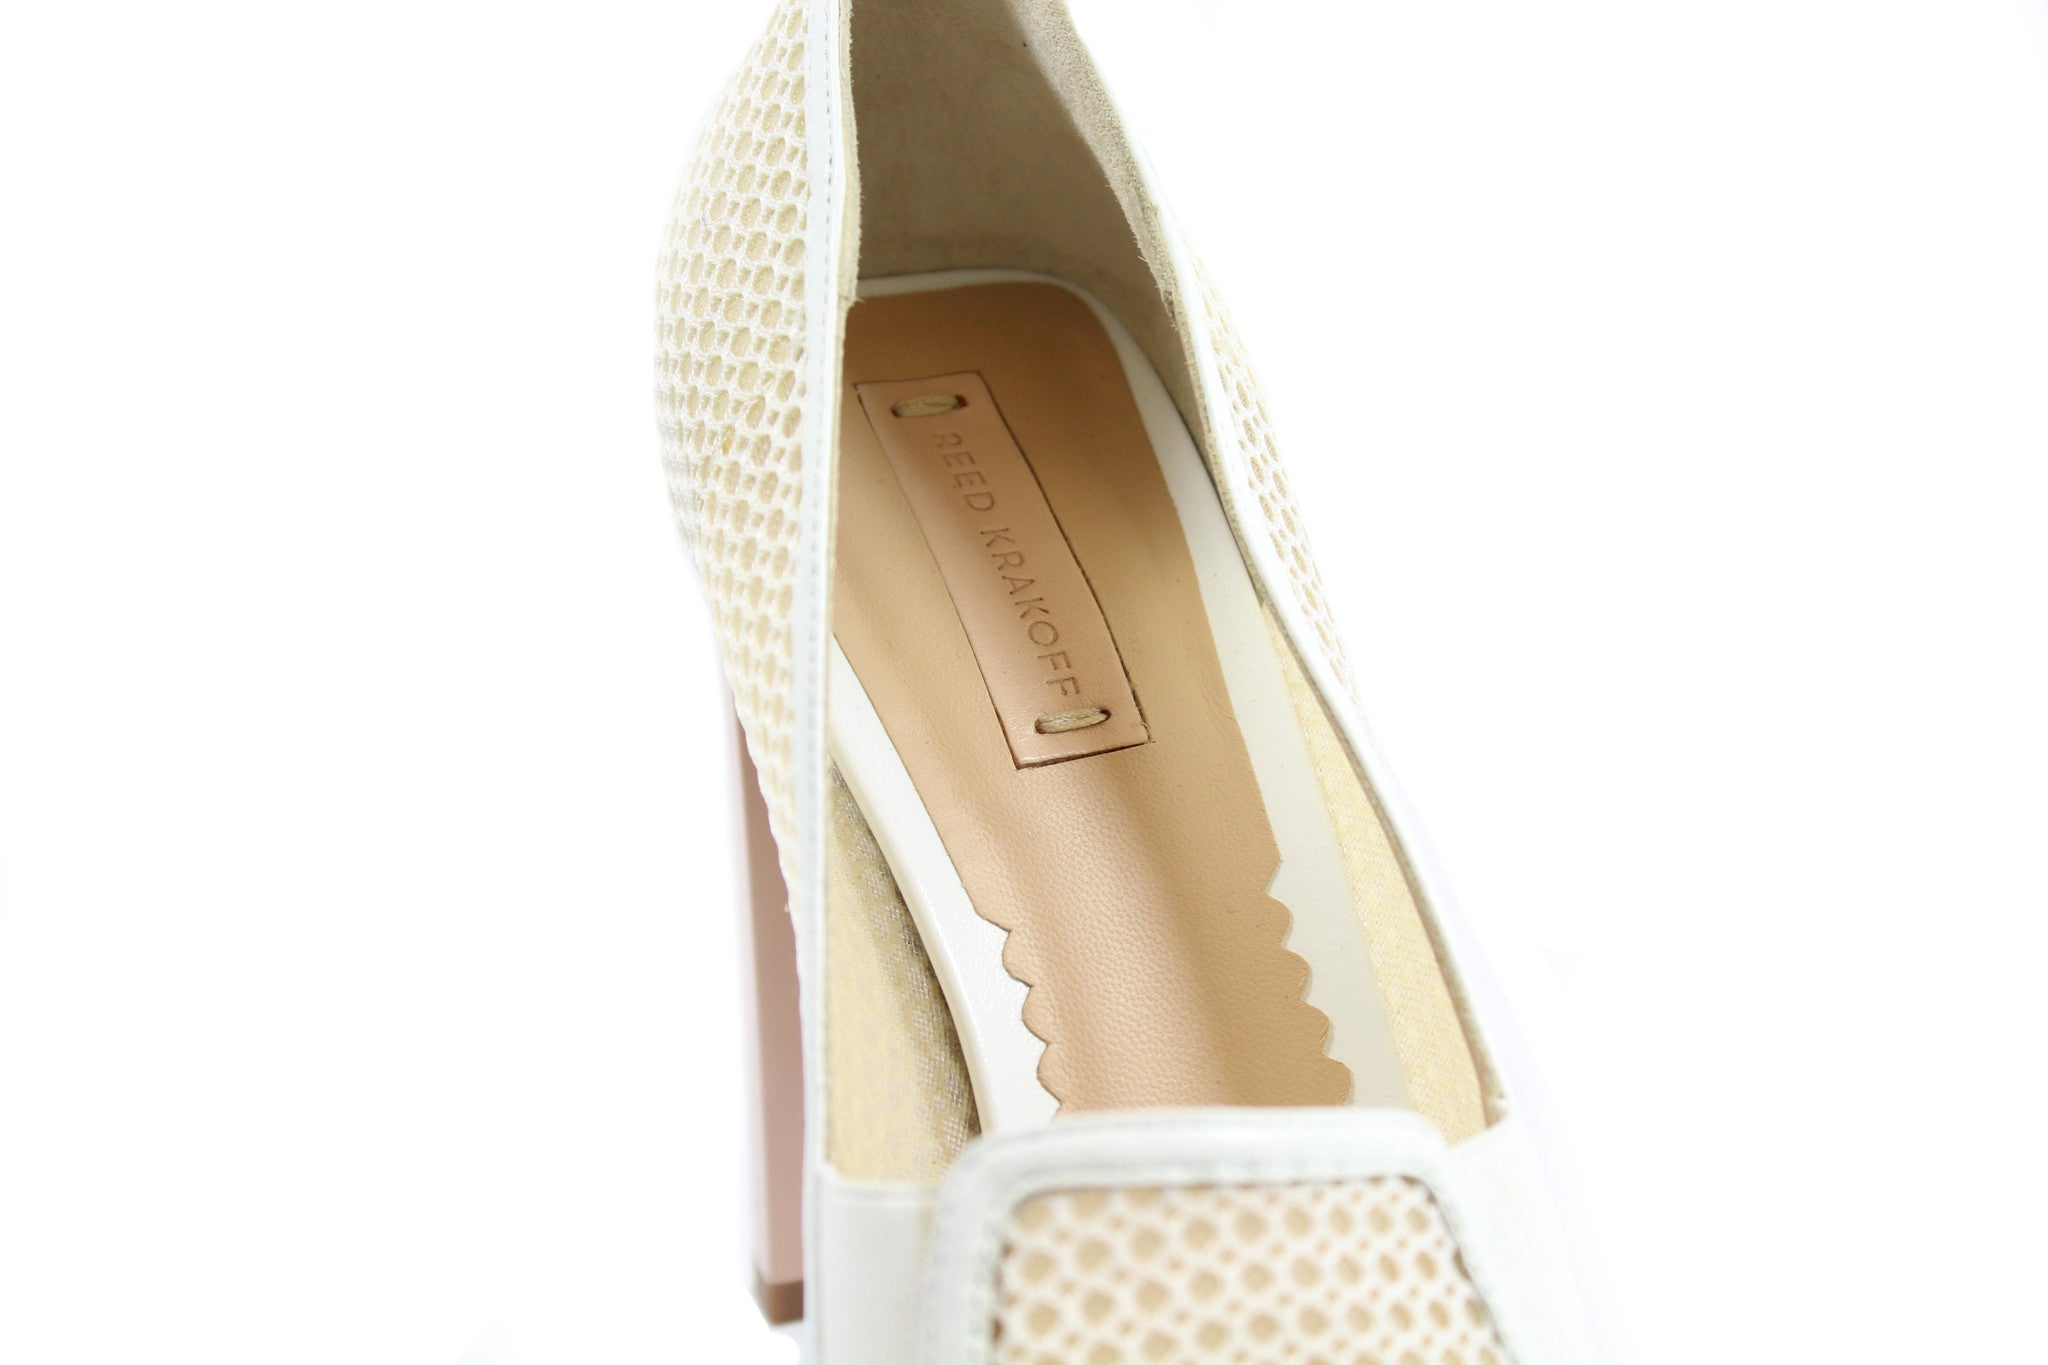 Reed Krakoff Mesh Atlas Nude and White Pumps (Size 38.5) - Encore Consignment - 6